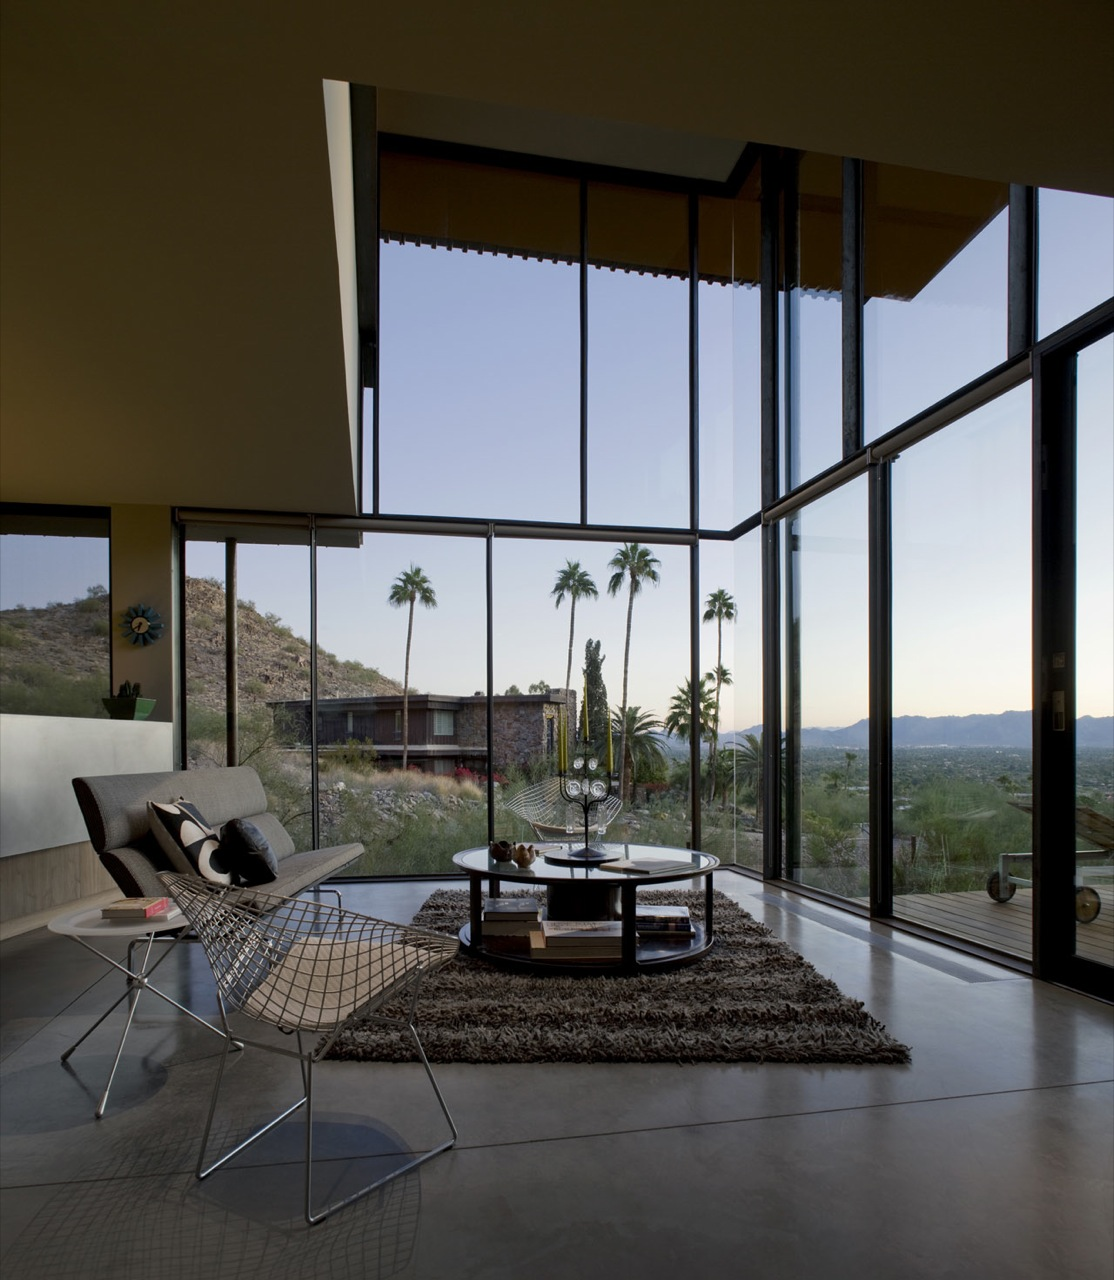 Floor-to-Ceiling Windows, Living Space, Rug, Coffee Table, Jarson Residence in Paradise Valley, Arizona